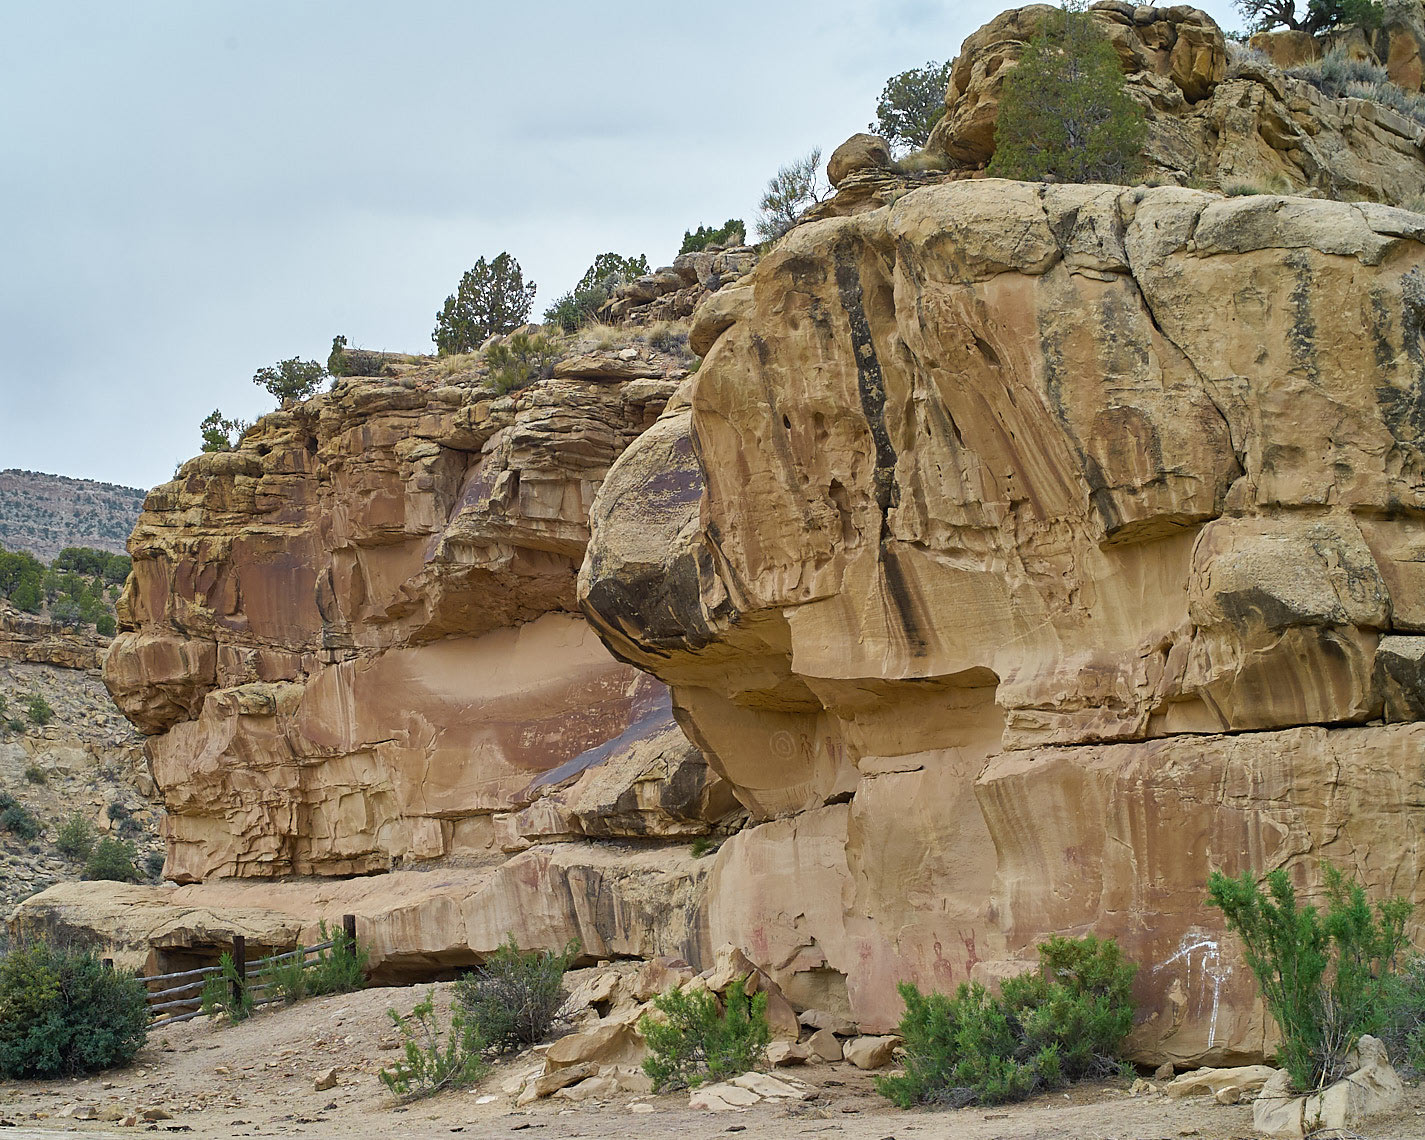 20120517_Sego-canyon-rock-art_001